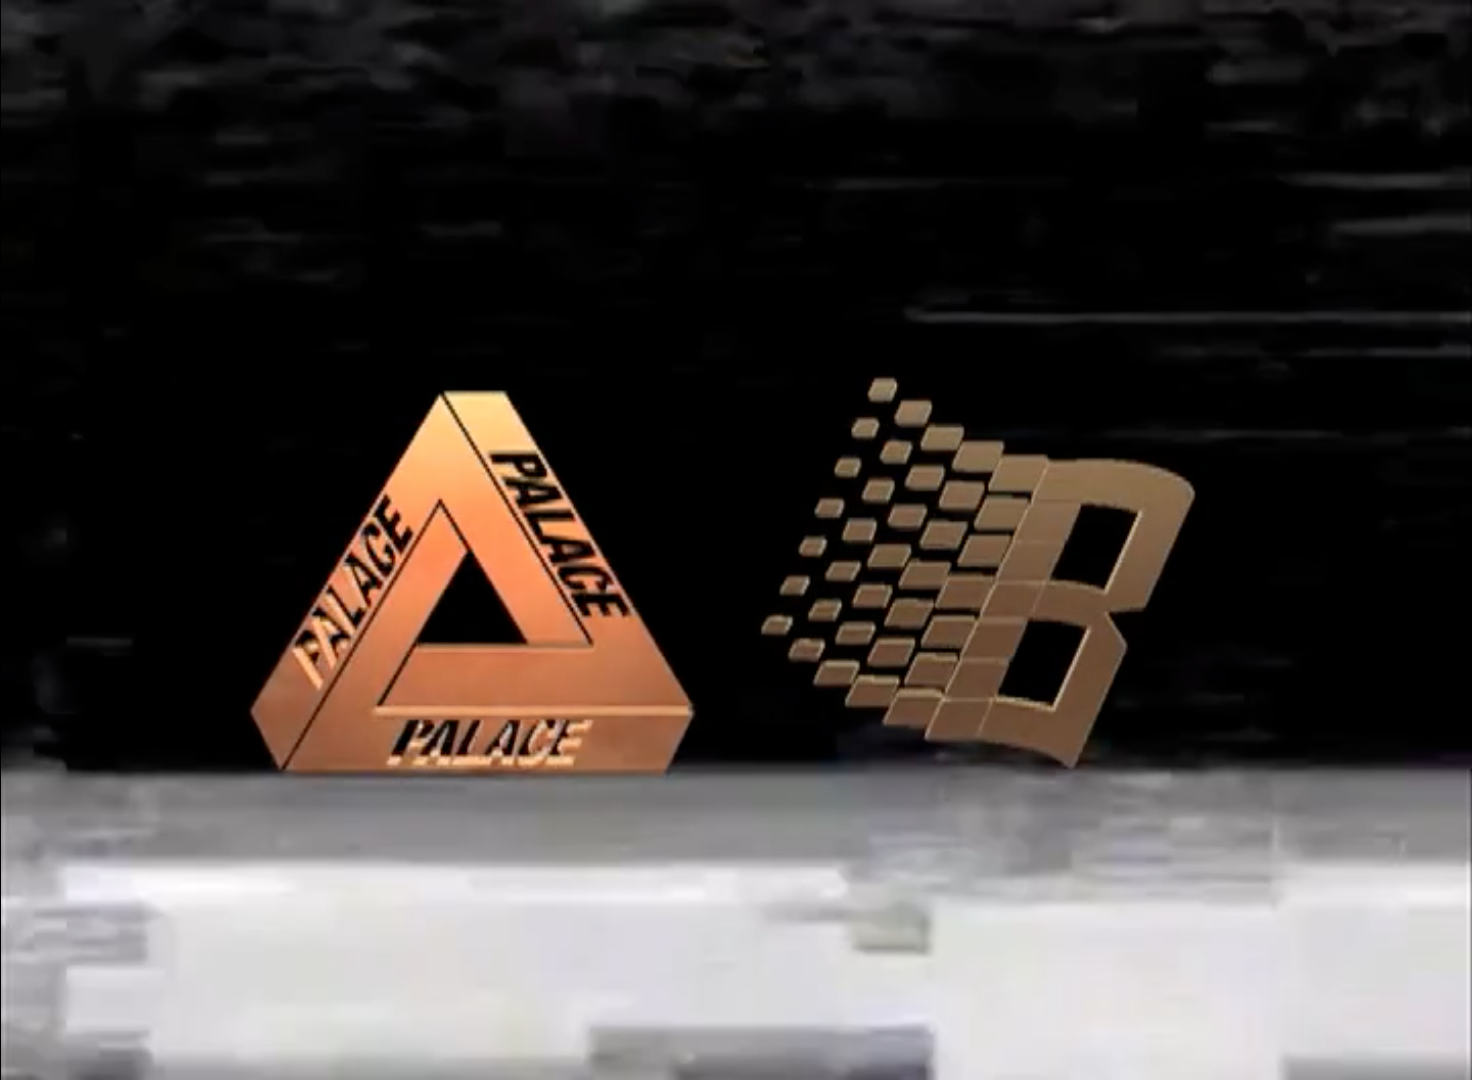 Sickest Skate Video You Will See This WEEK PALACE BRONZE Now Showing